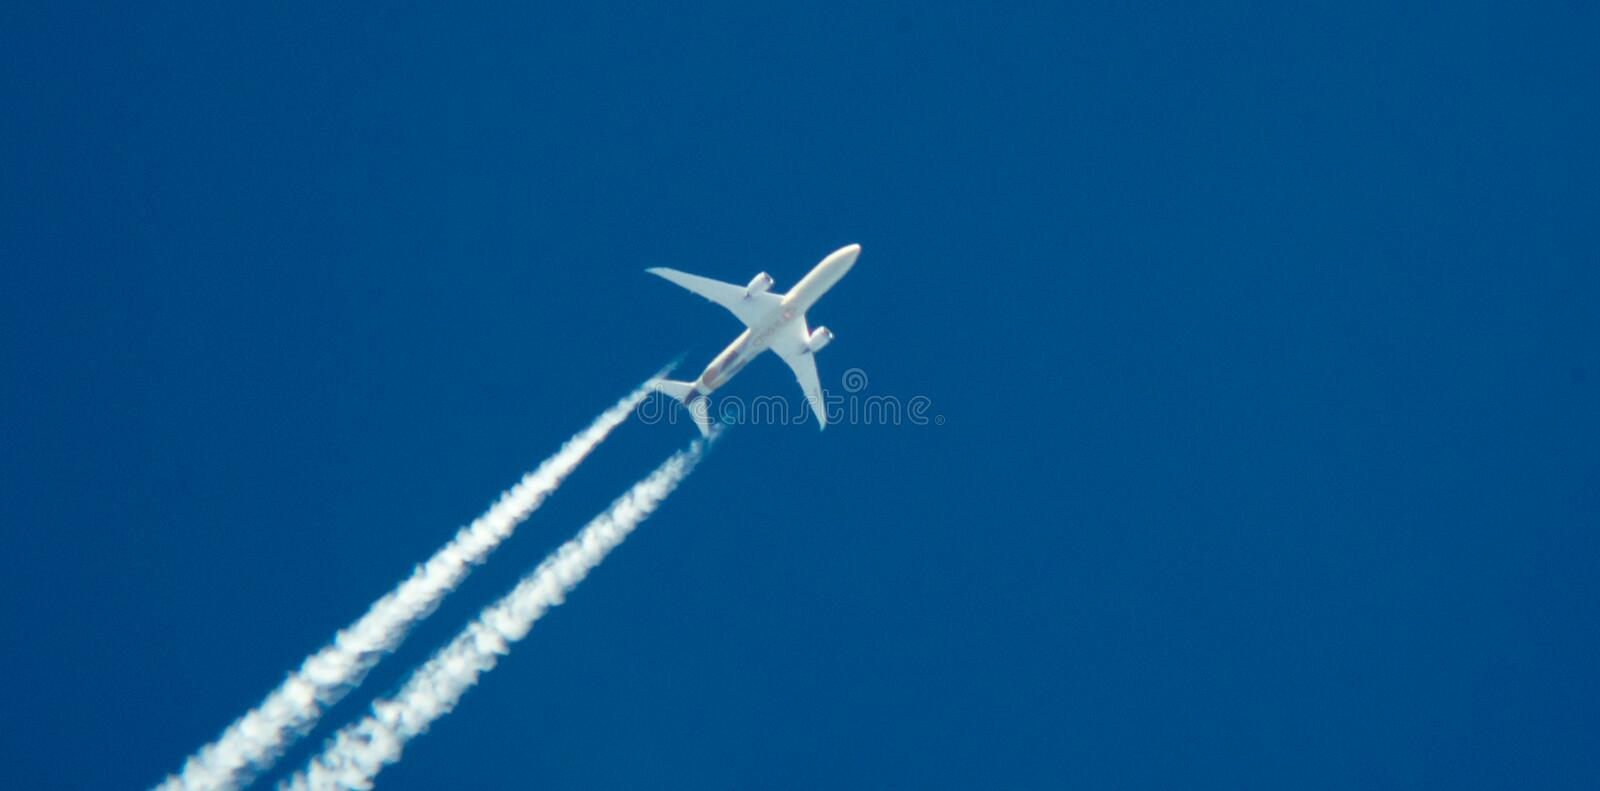 Airplane with contrail stock photo